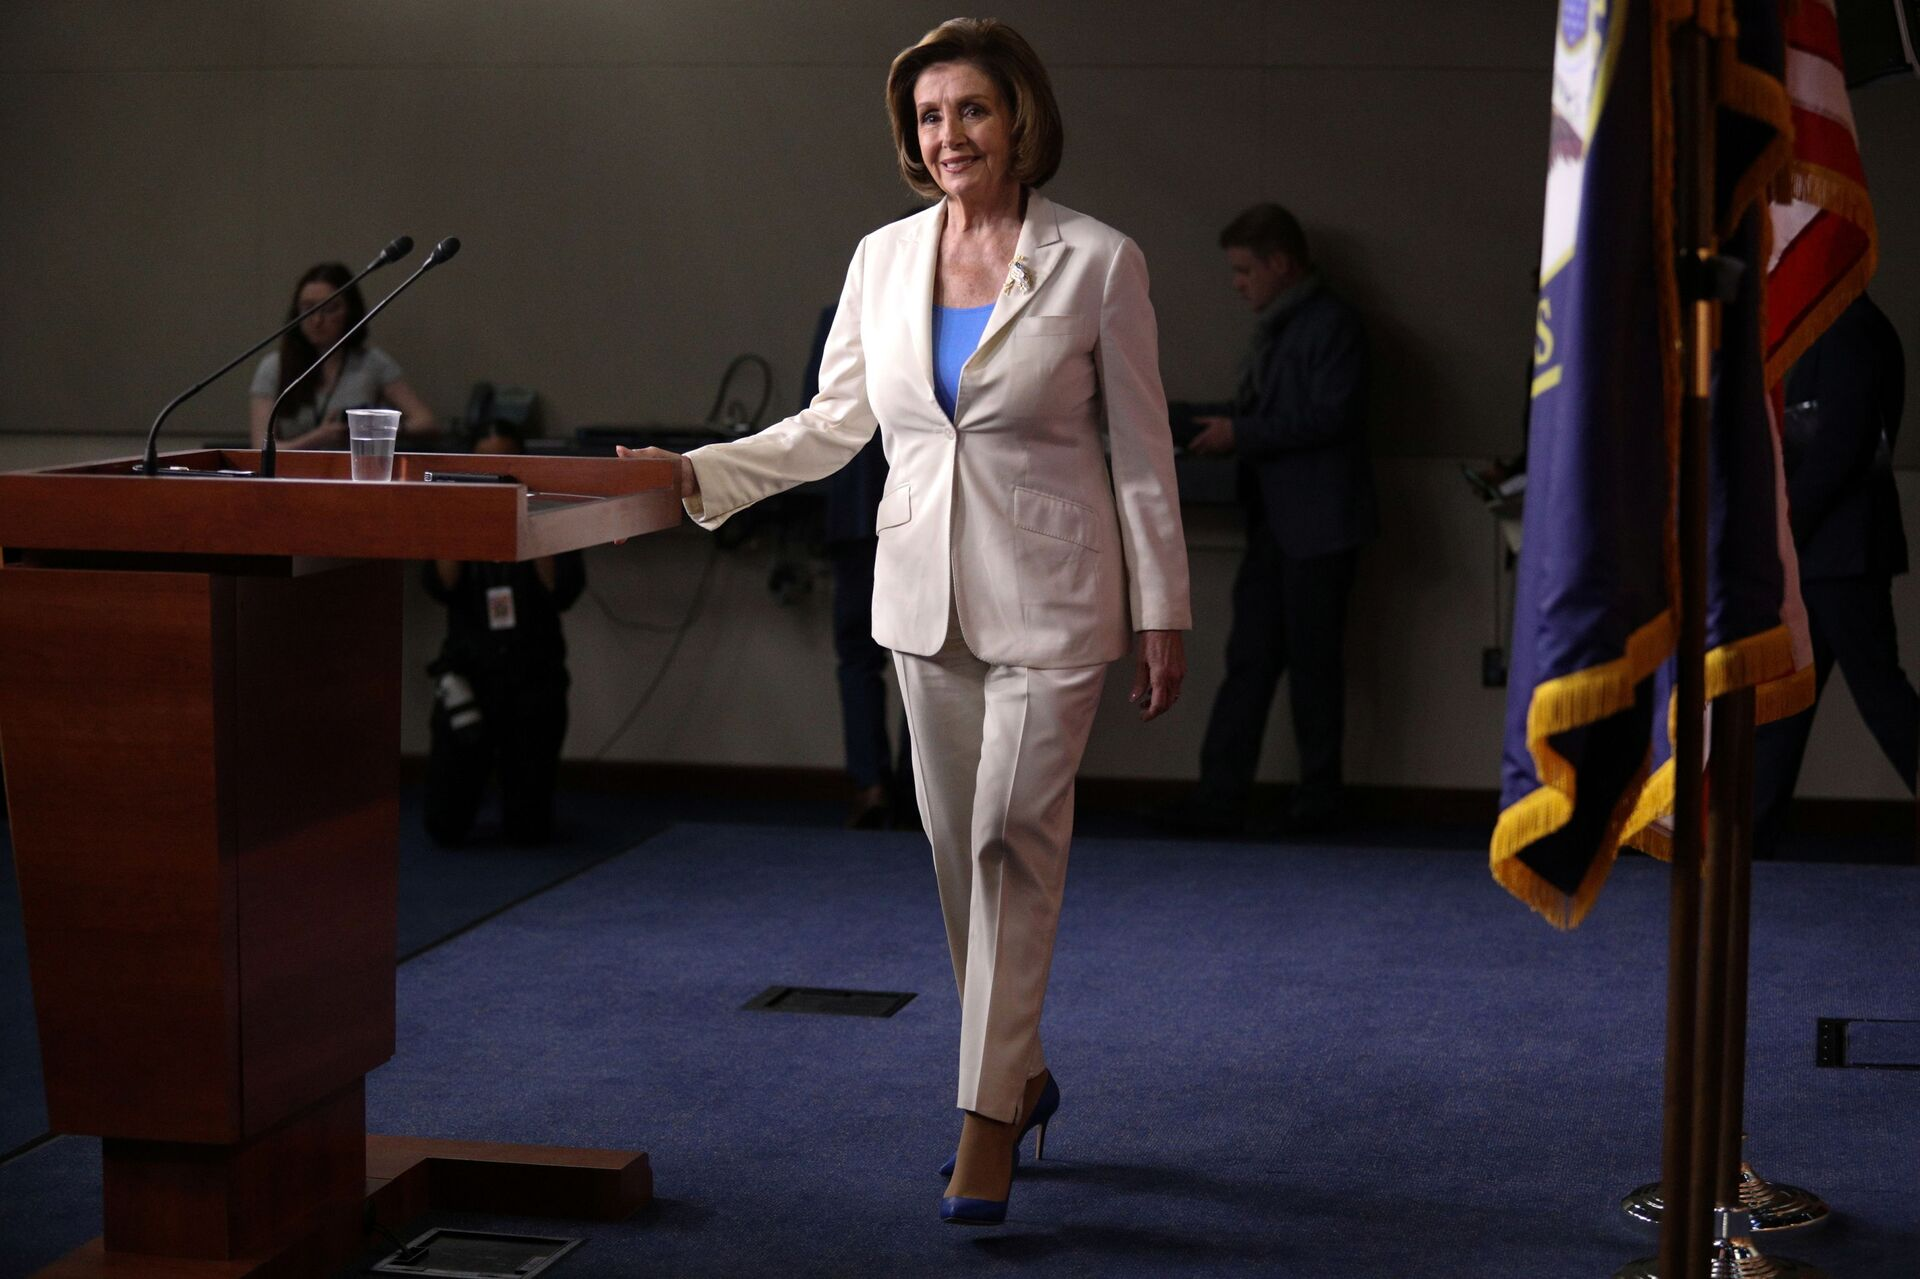 U.S. Speaker of the House Nancy Pelosi walks on stage before her remarks during a weekly news conference on Capitol Hill in Washington, U.S., June 24, 2021 - Sputnik International, 1920, 07.09.2021